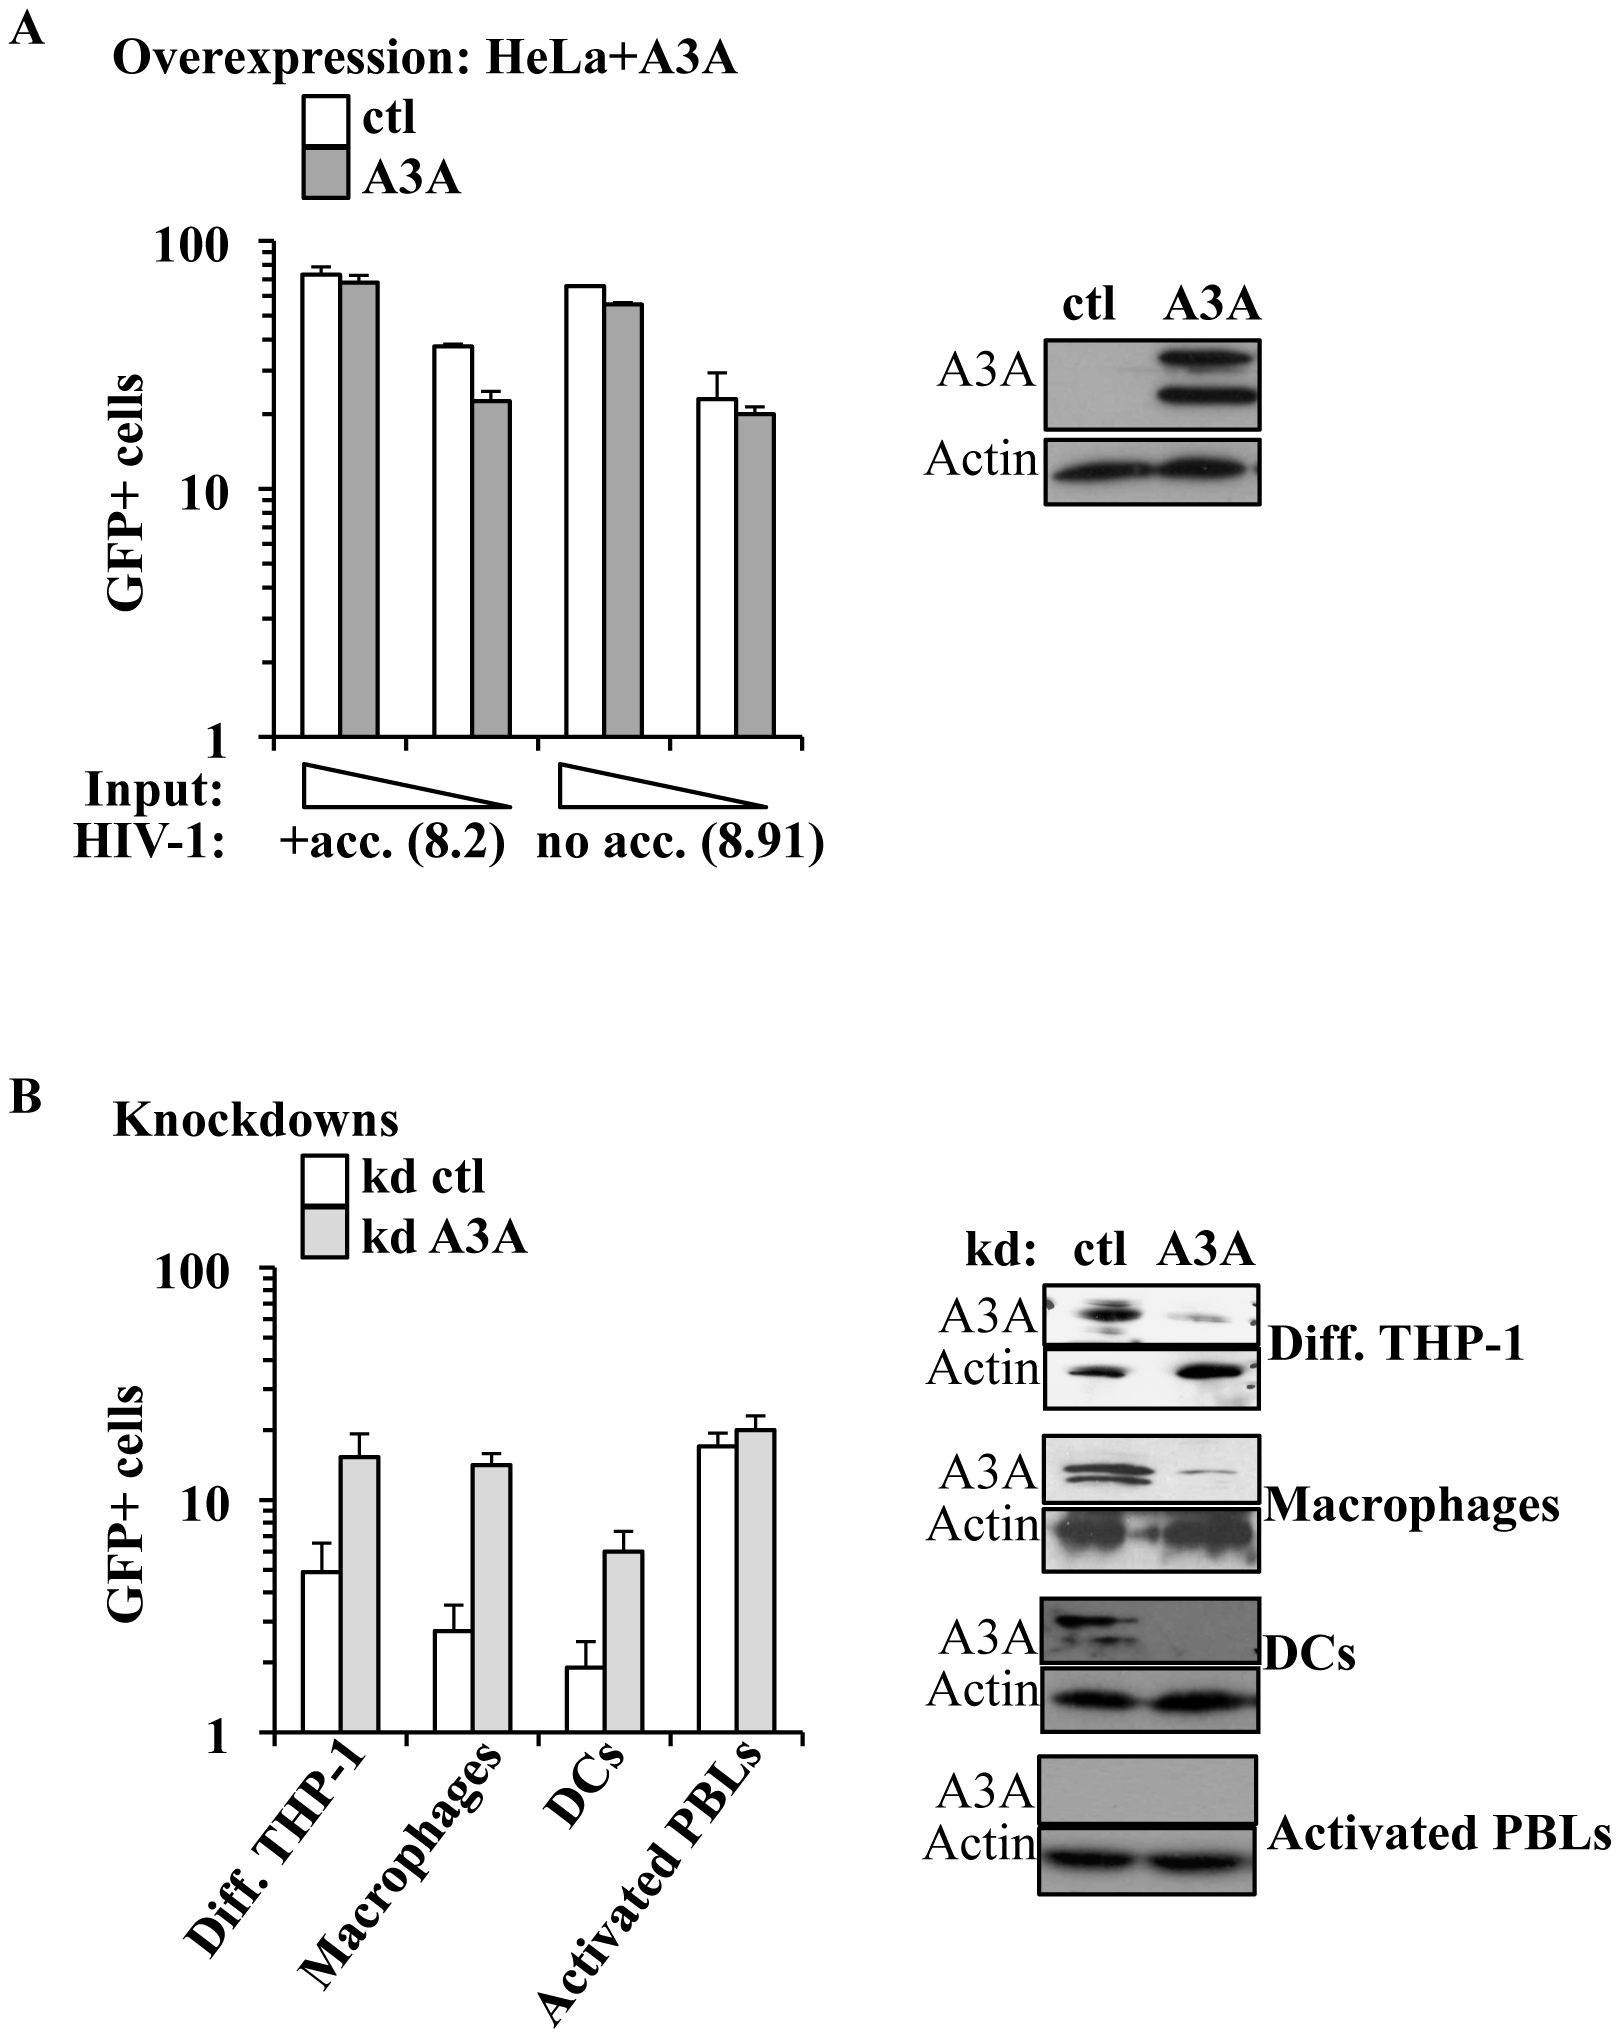 A3A inhibits the early phases of HIV-1 infection specifically in myeloid cells.